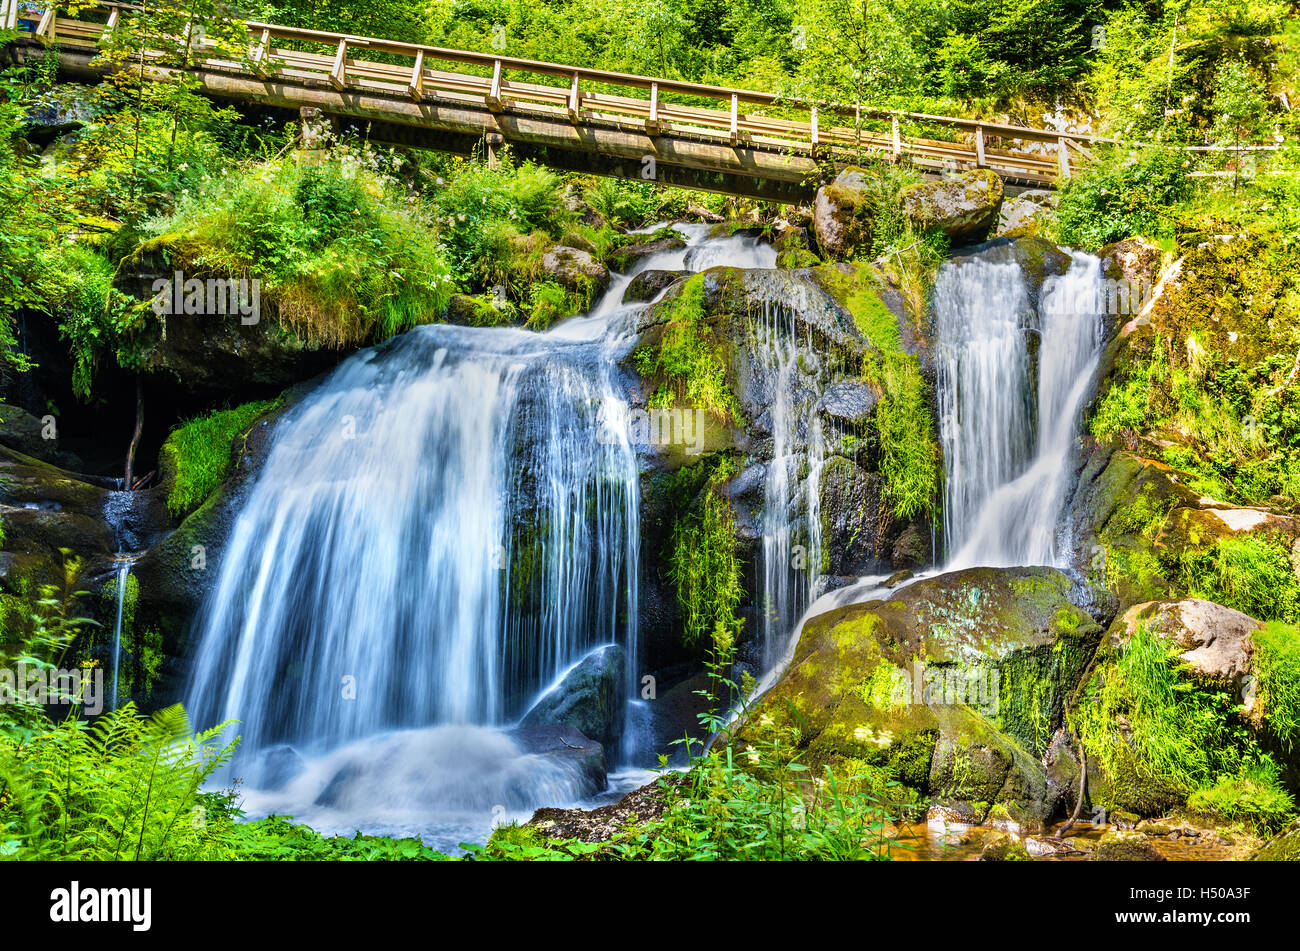 Triberg Falls, one of the highest waterfalls in Germany - the Black Forest region Stock Photo